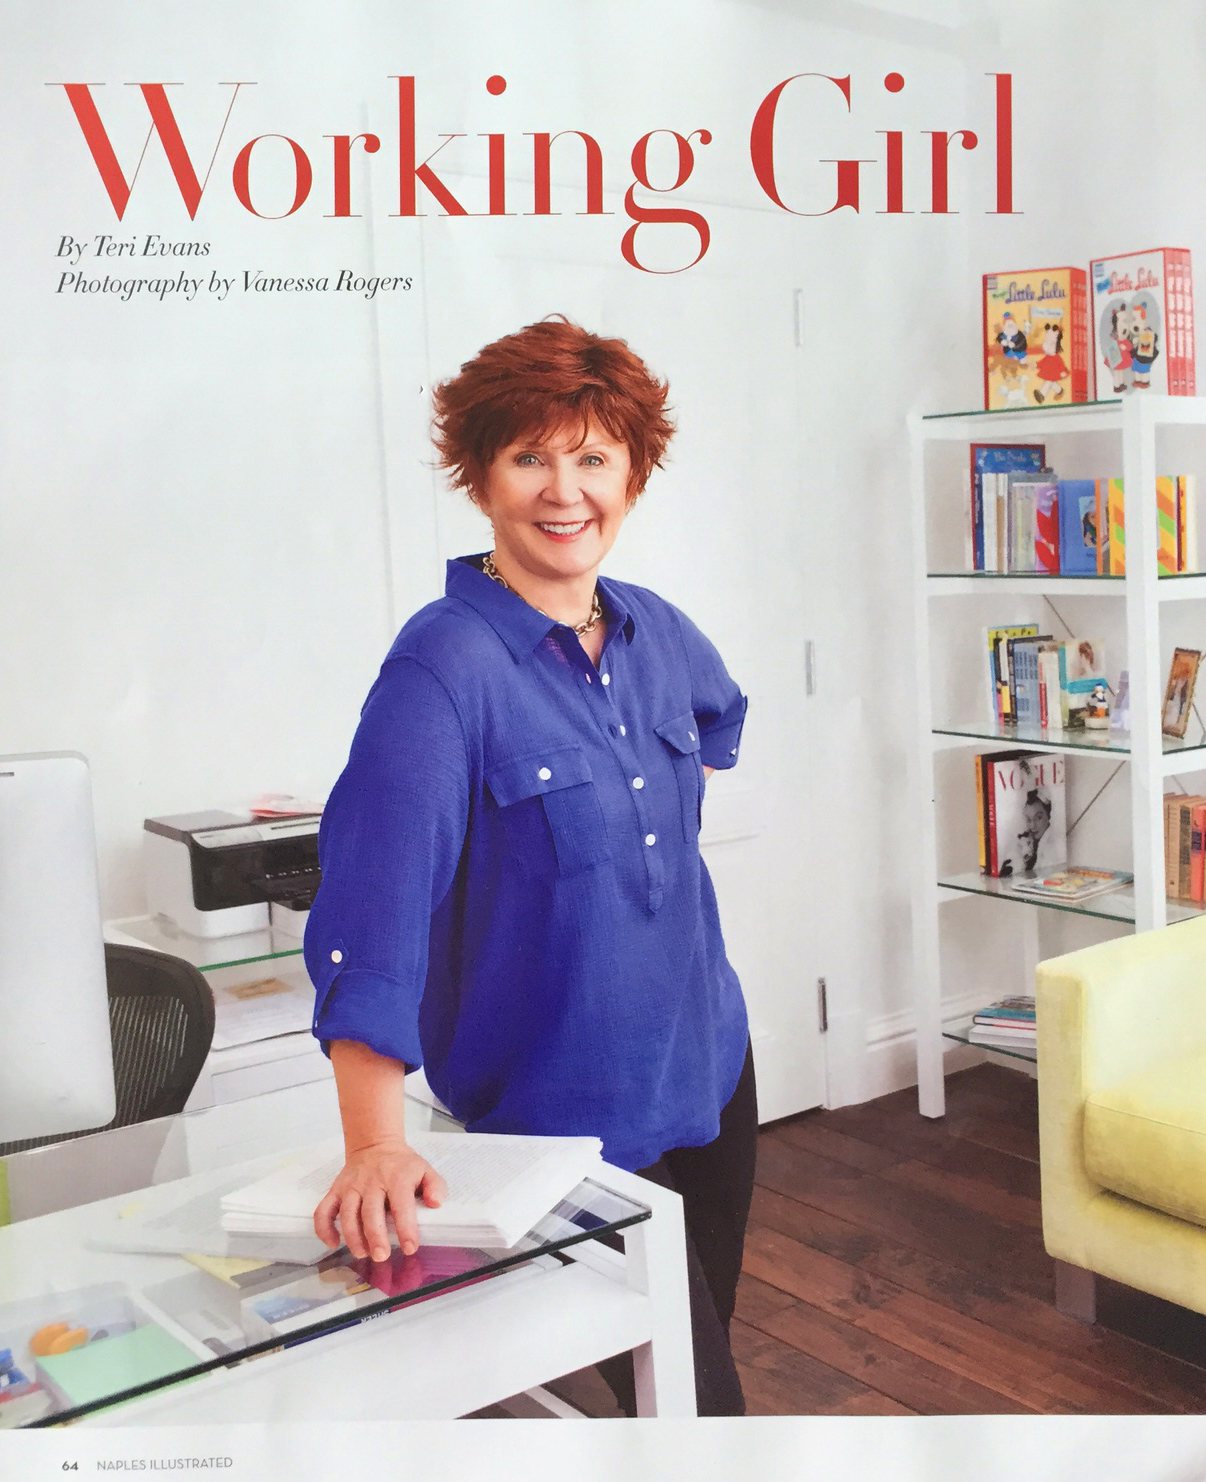 NAPLES_ILLUSTRATED_DECEMBER_ISSUE_2014_JANETT_EVANOVICH_WORKING_GIRL_PHOTOGRAPHED_BY_VANESSA_ROGERS